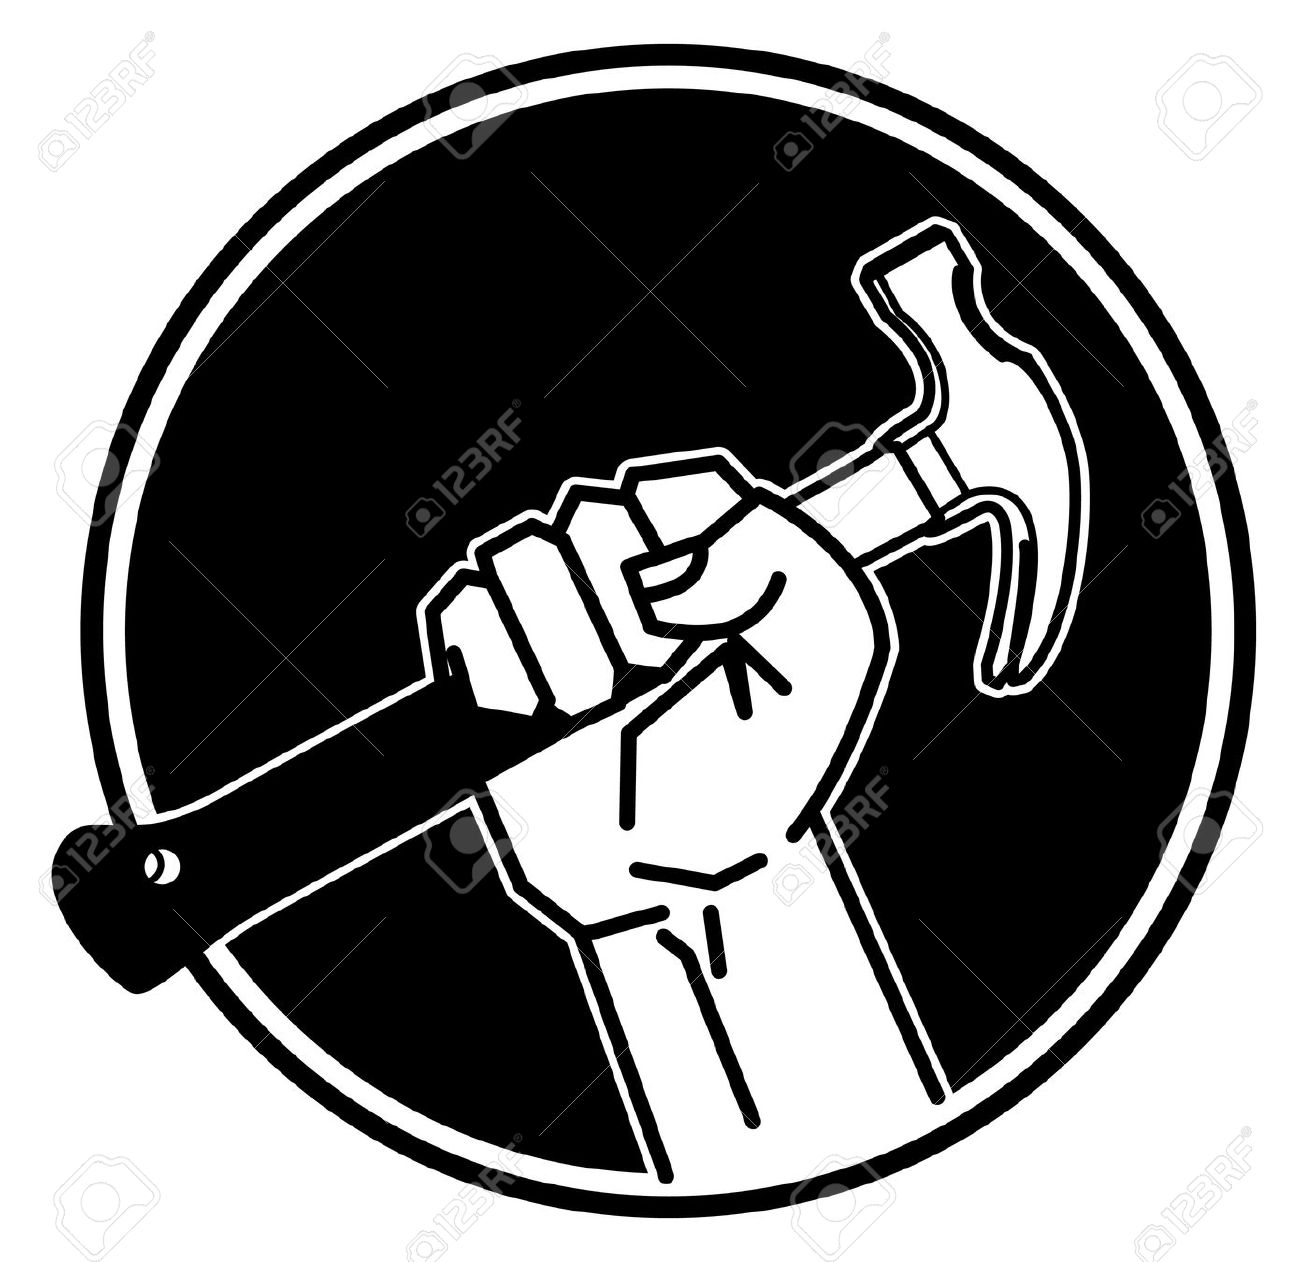 555 Hand Holding Hammer Stock Vector Illustration And Royalty Free.